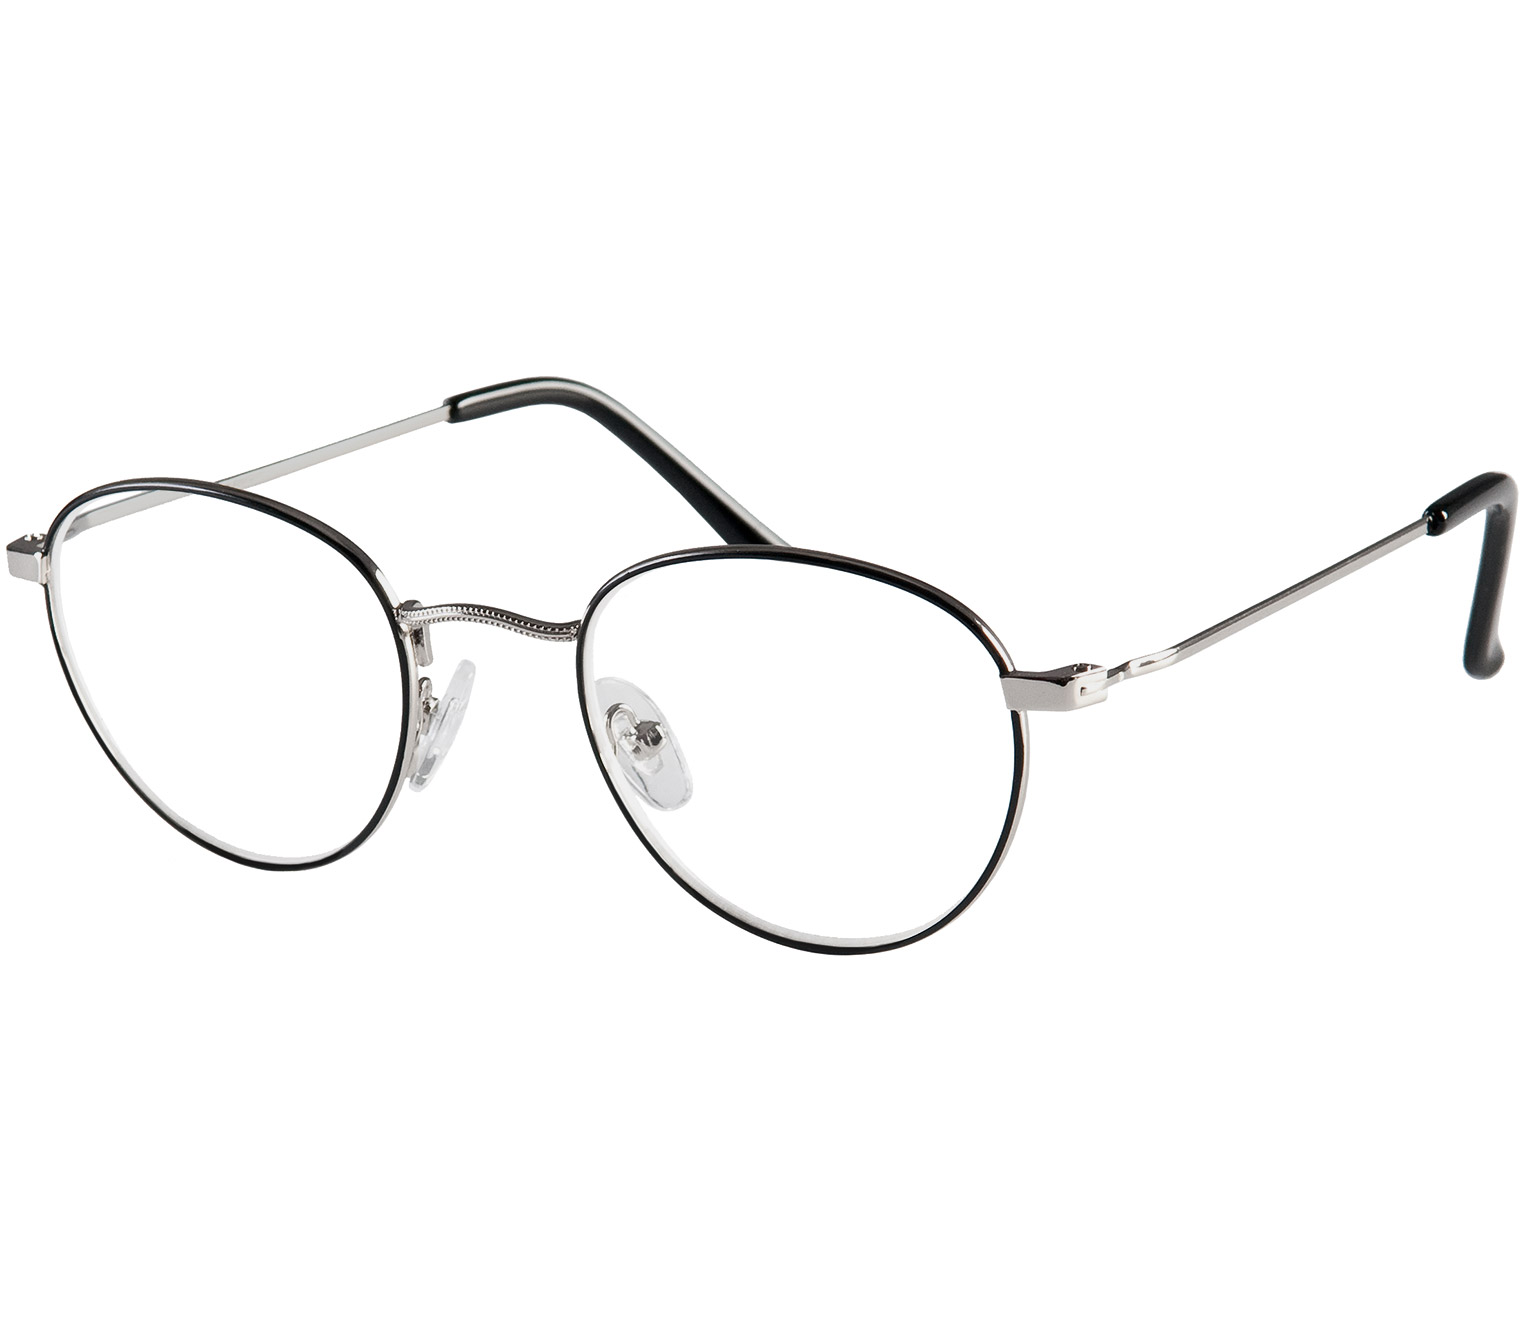 Main Image (Angle) - Oxford (Black) Reading Glasses